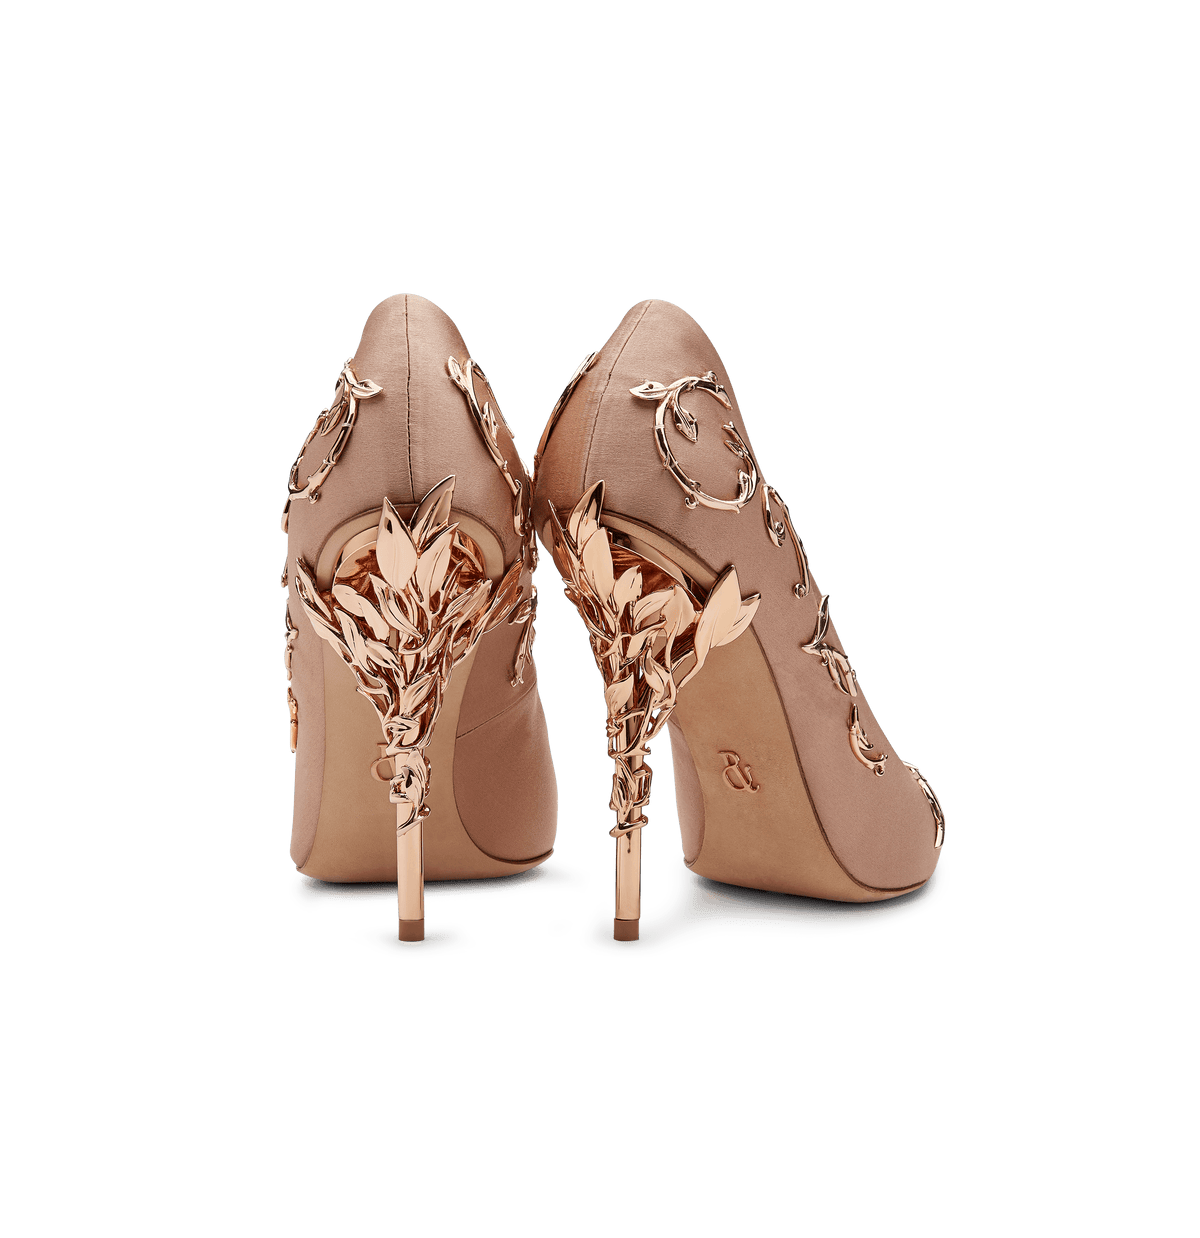 Vintage Pink Satin Eden Pumps with Rose Gold Leaves